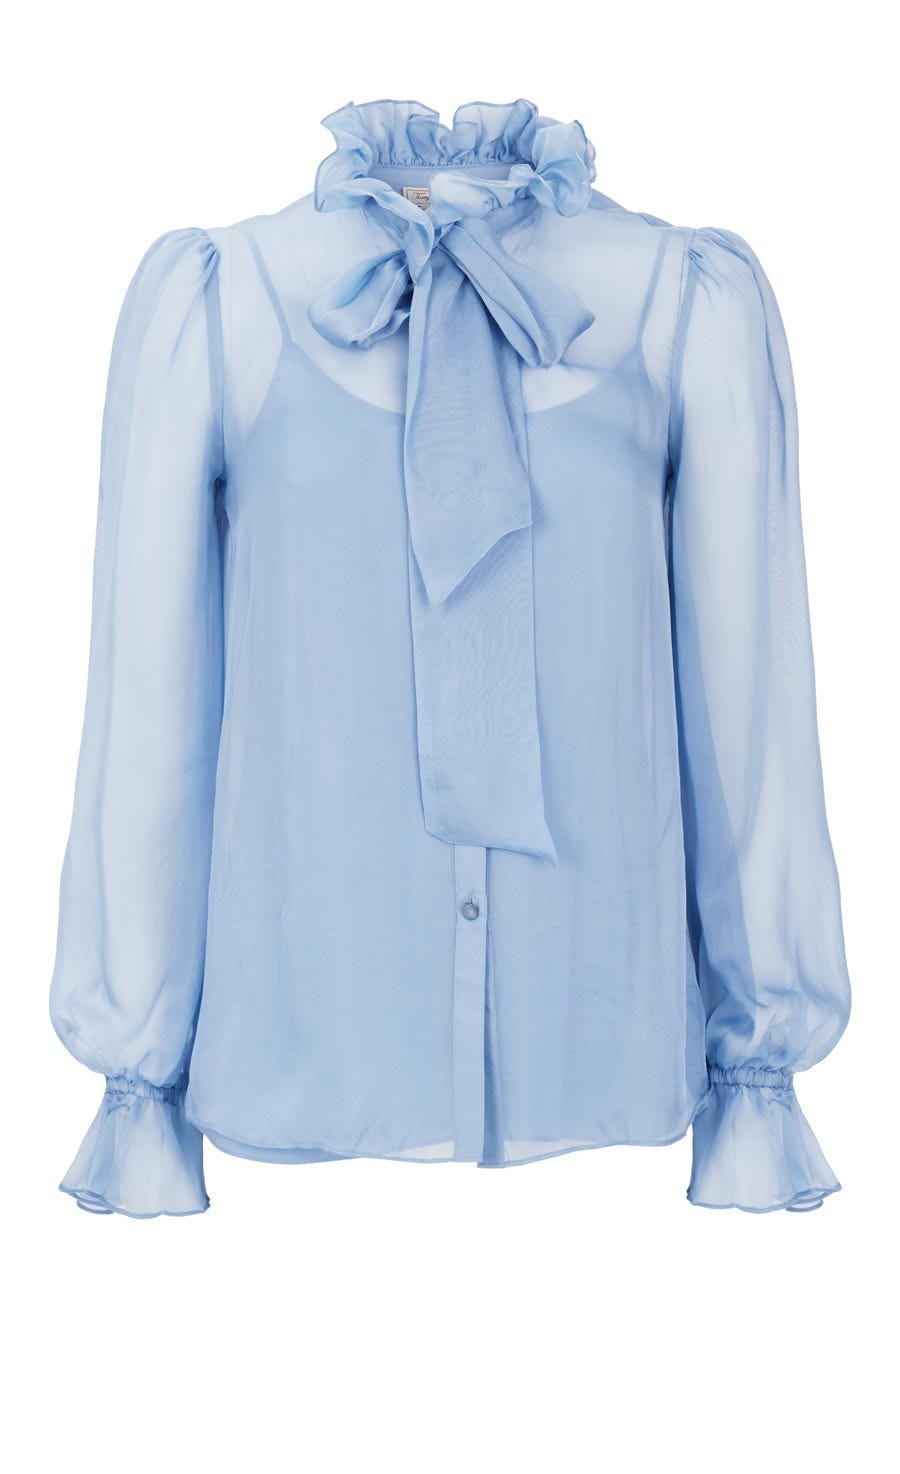 Costume Silk Shirt, Iris